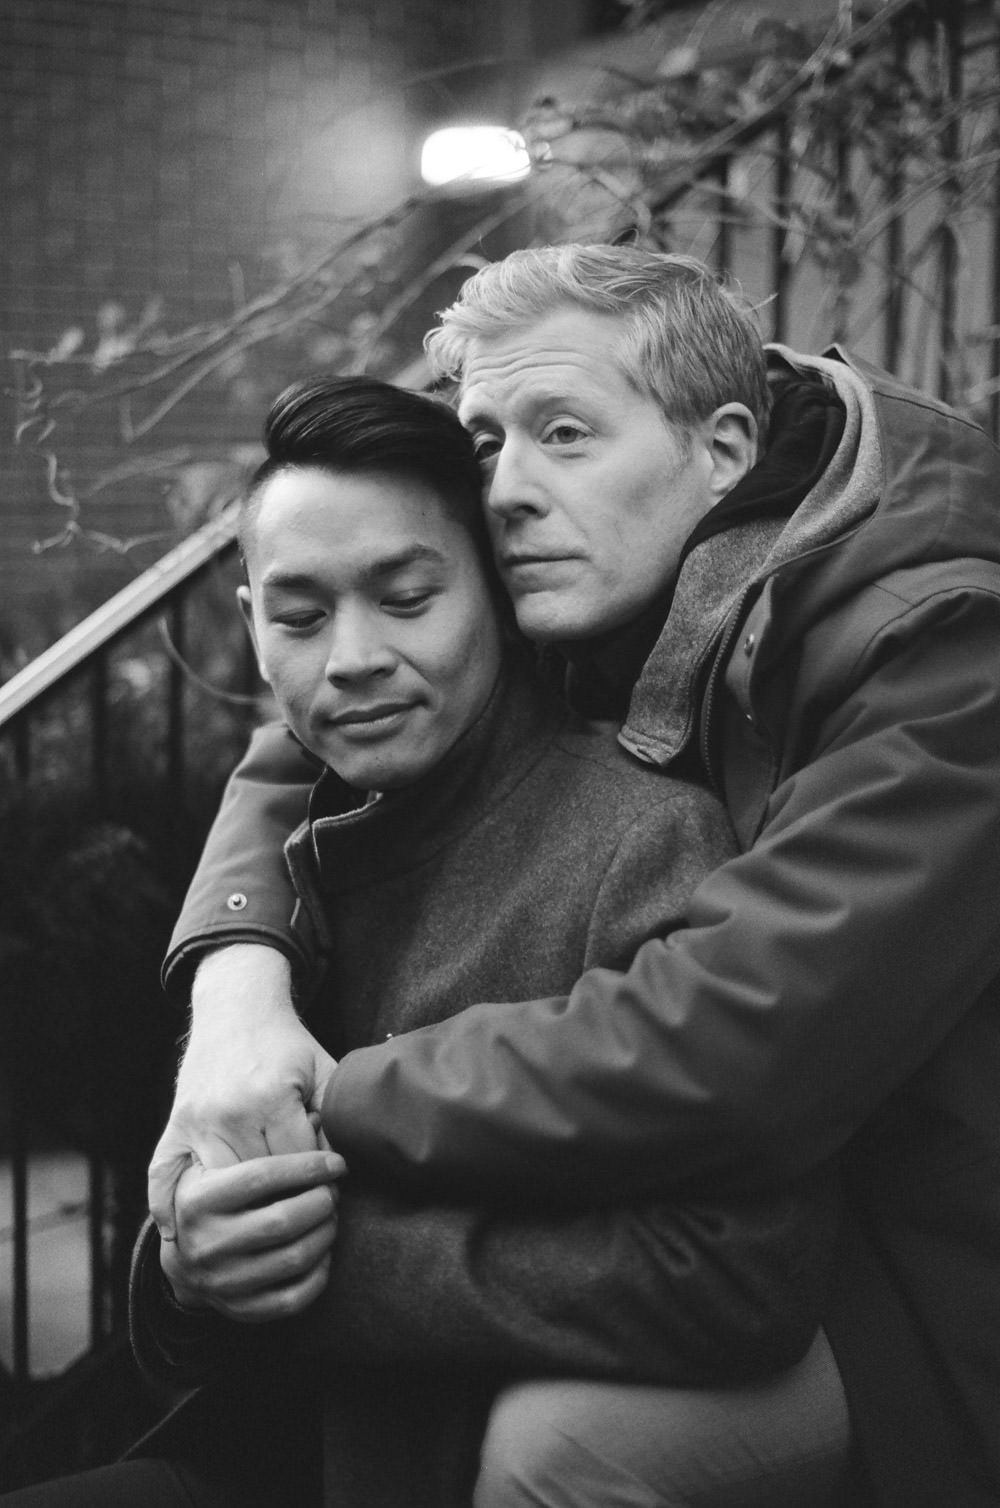 Ken and Anthony Rapp Engagement Photography - LGBTQIA Wedding Photographers - New York City Wedding Photography - Anthony Rapp Engaged